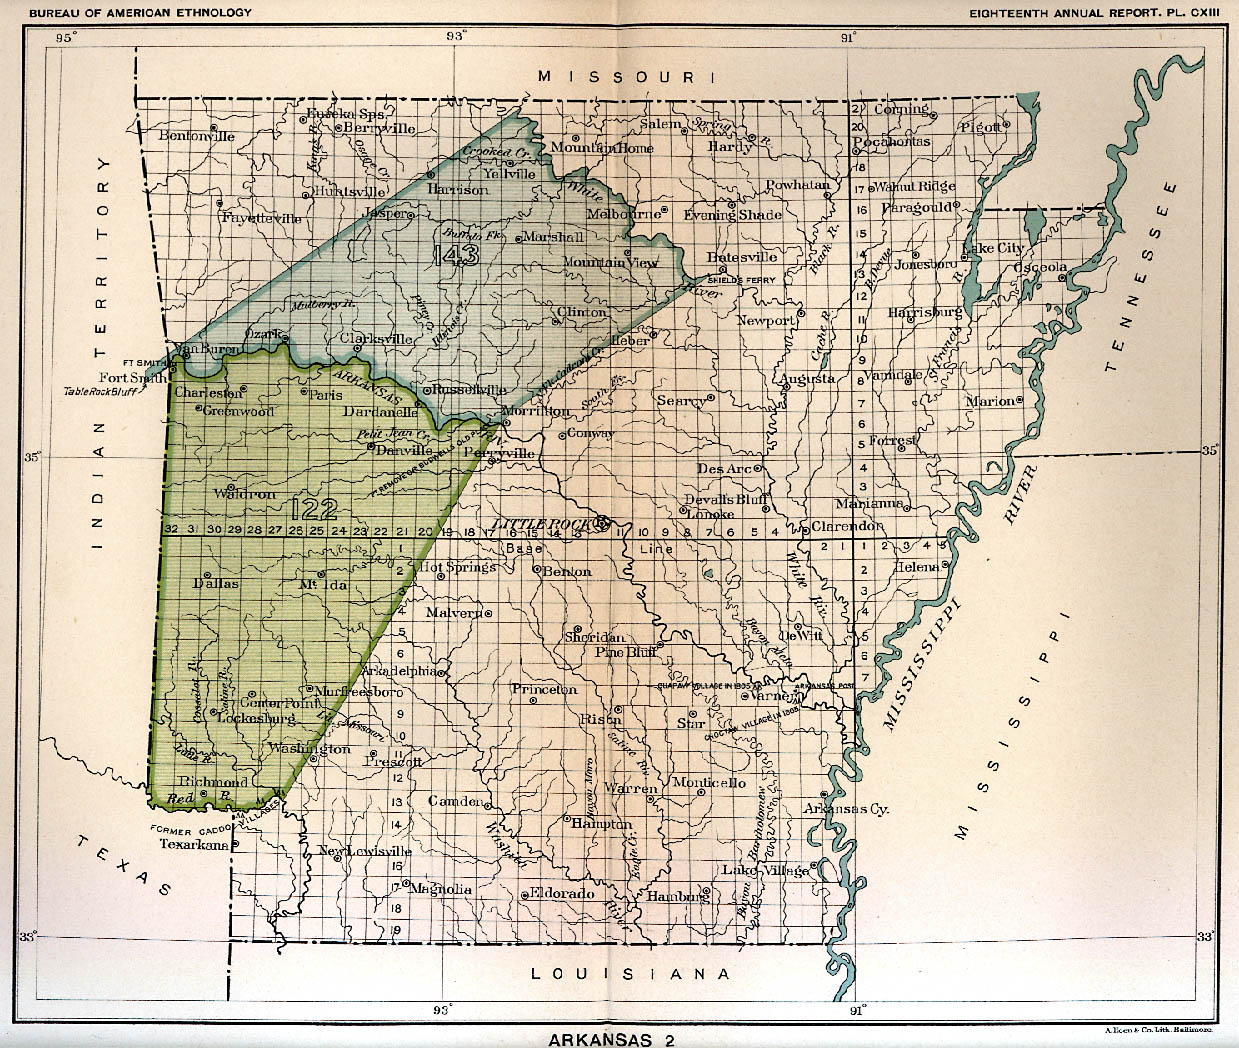 Arkansas Indian Tribes Map Indian Land Cessions Maps and Treaties in Arkansas, Indian